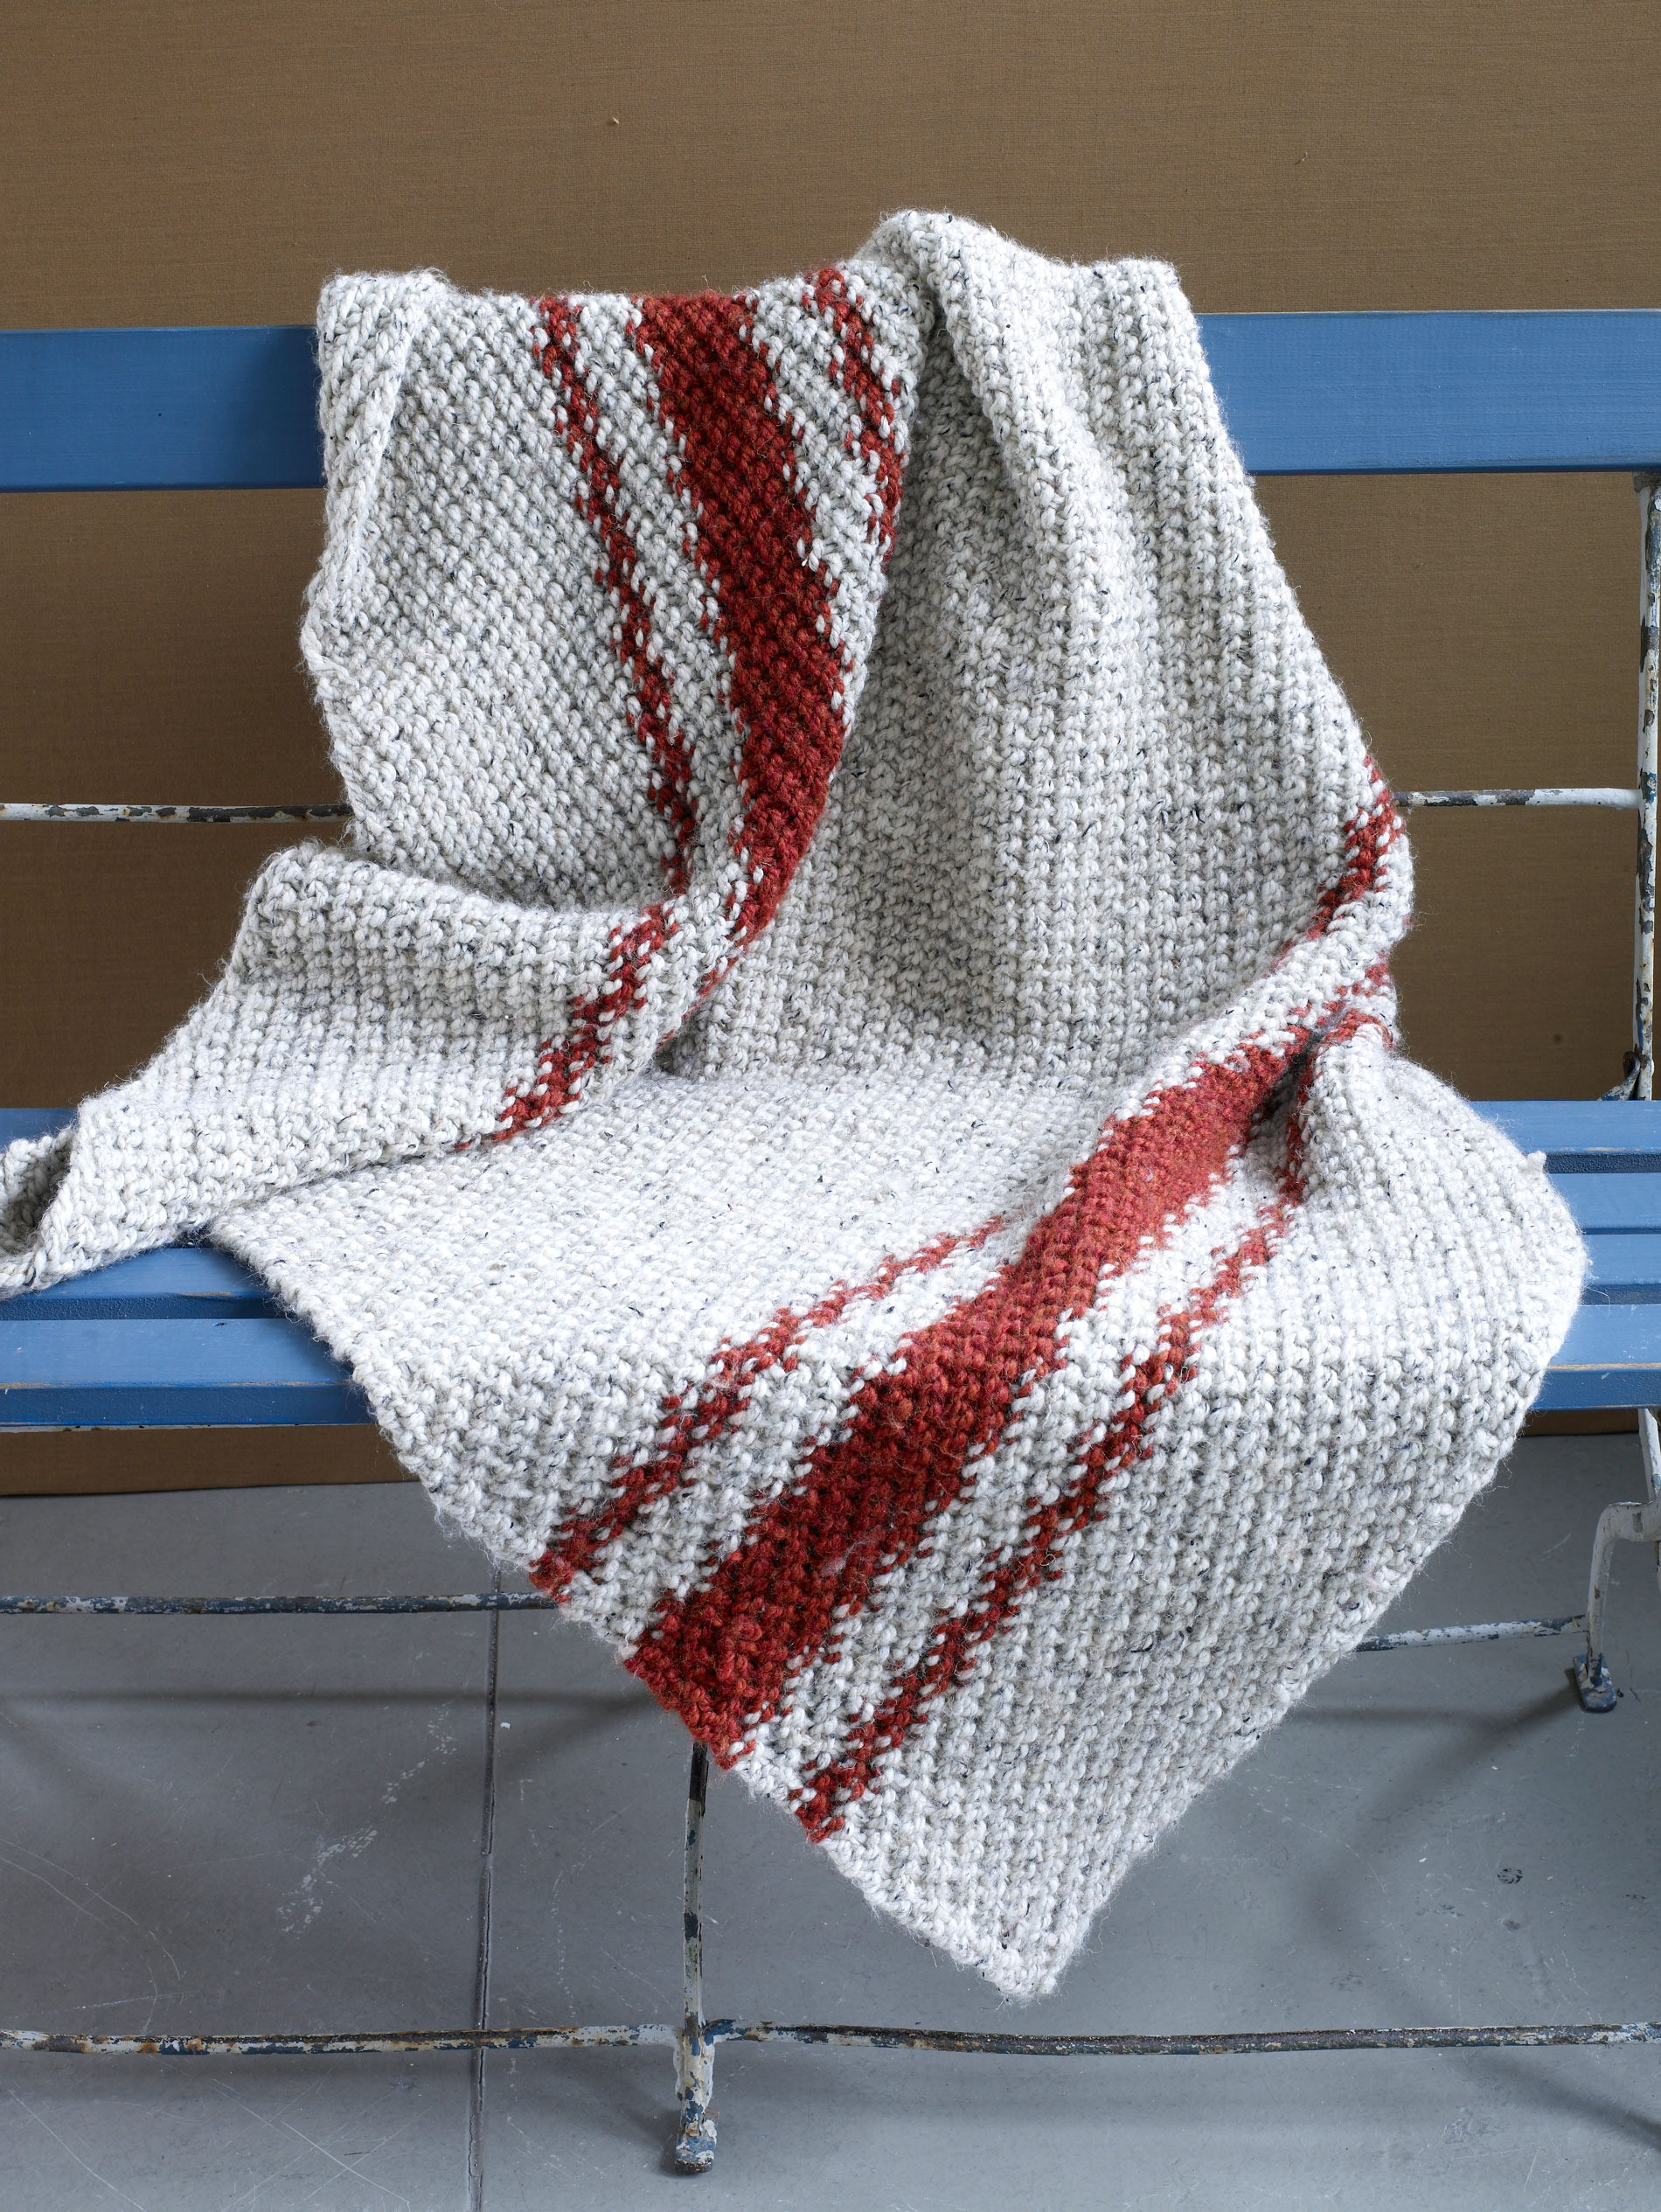 Best Of 7 Free Patterns to Knit for Charity • Loveknitting Blog Knit Throw Blanket Pattern Of Marvelous 46 Pictures Knit Throw Blanket Pattern